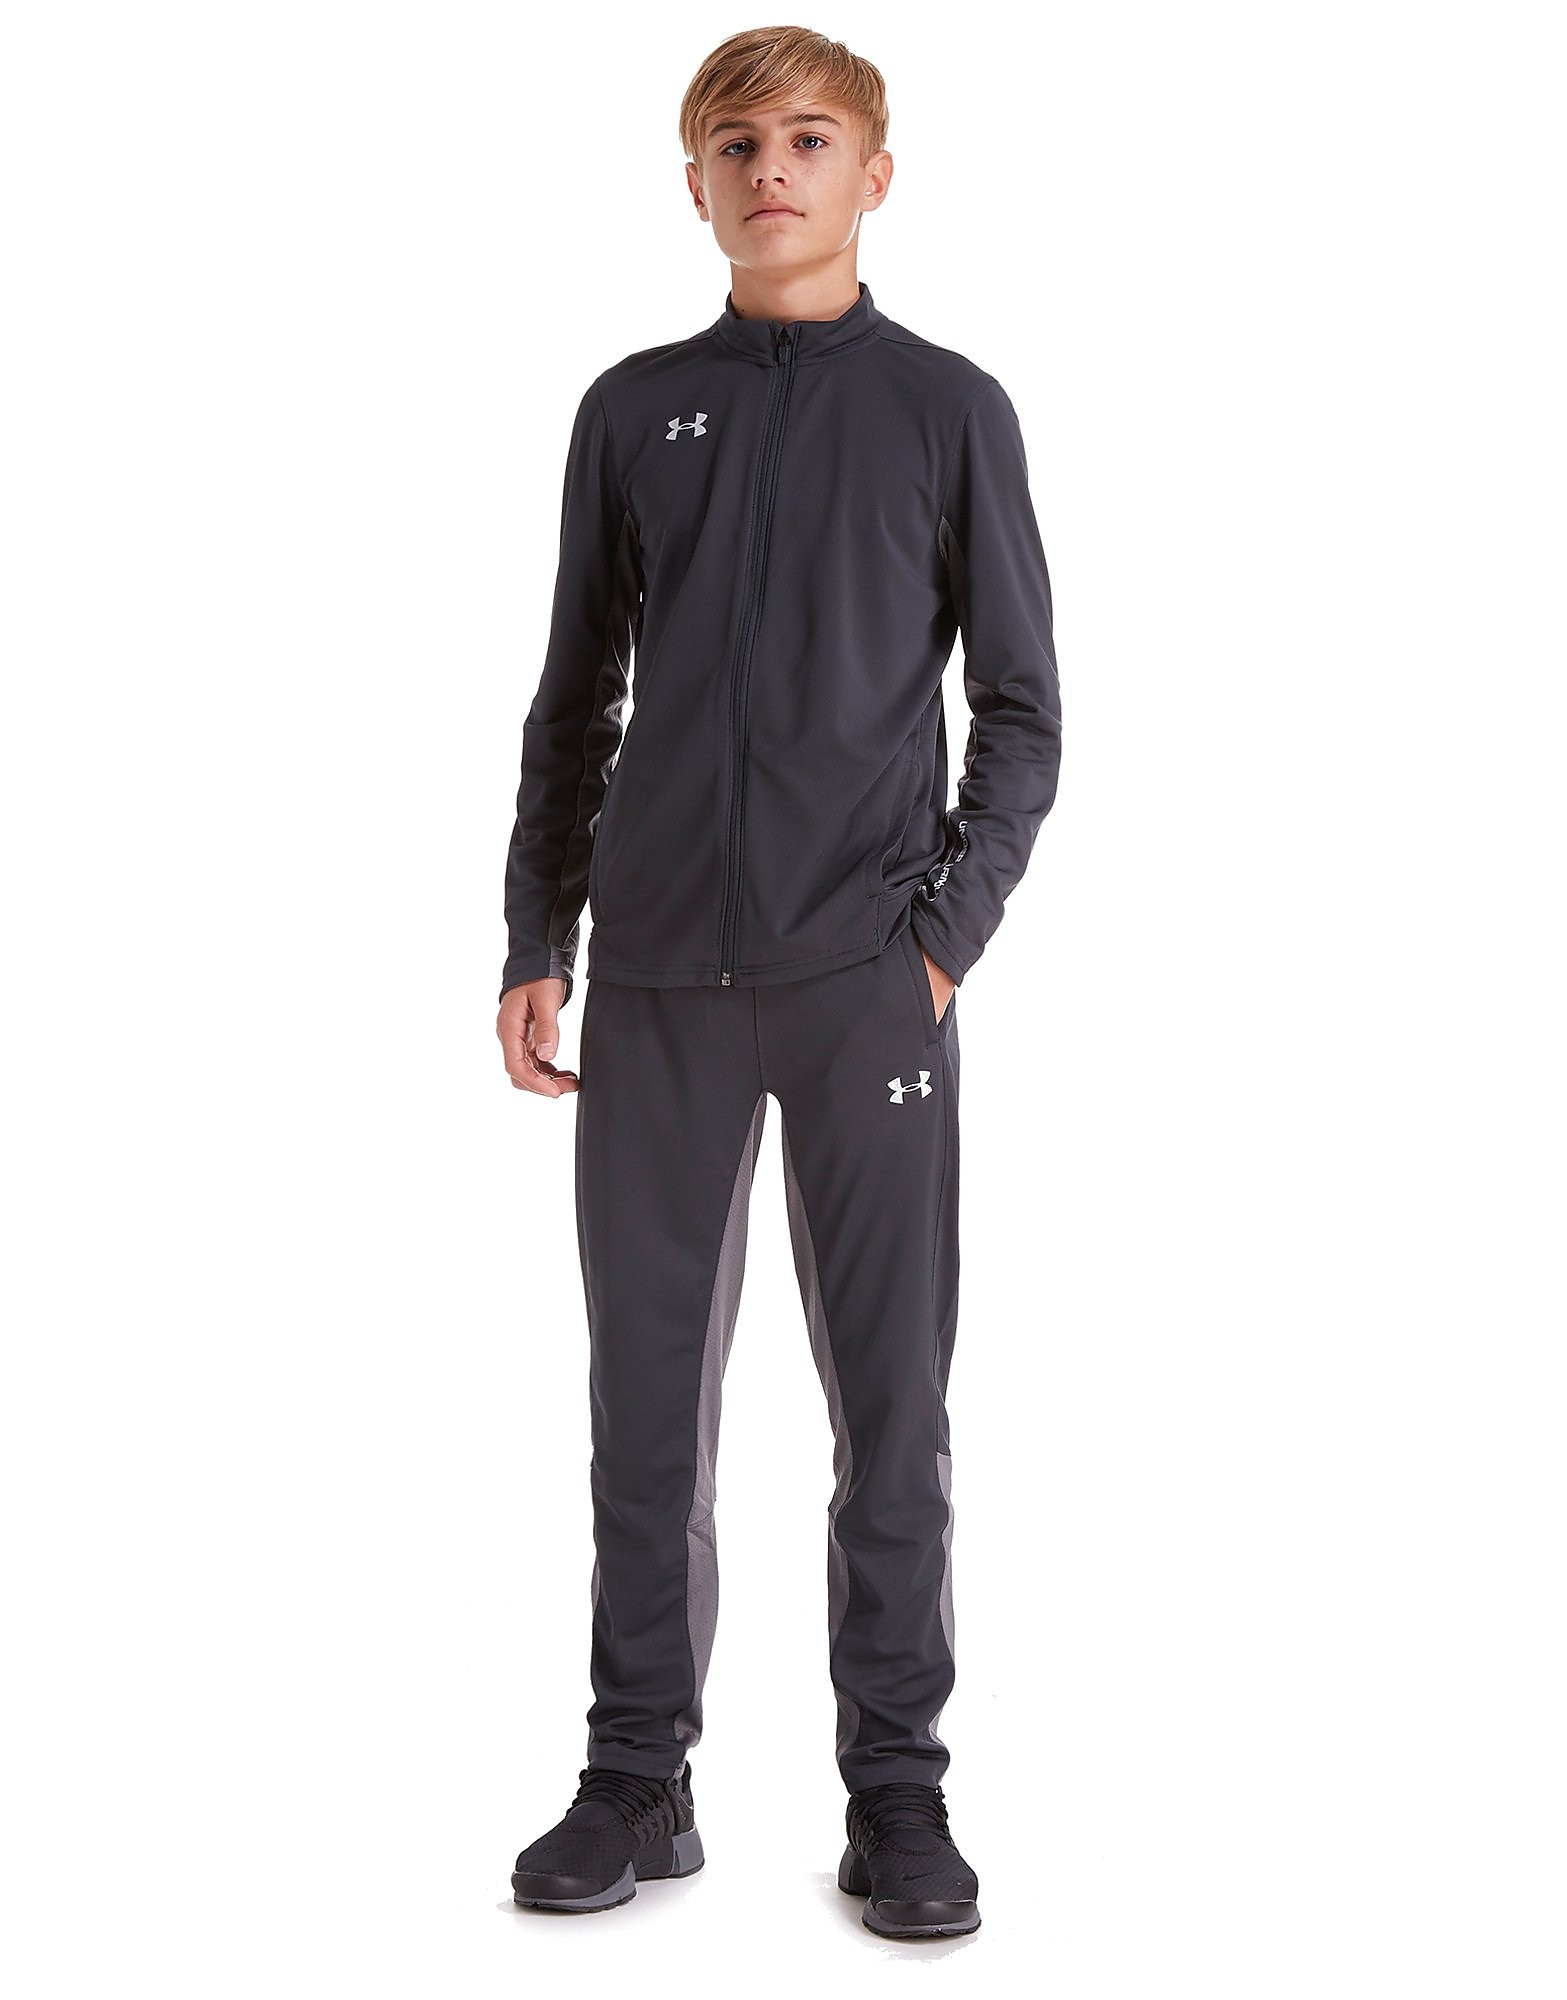 Under Armour Challenger Suit Junior